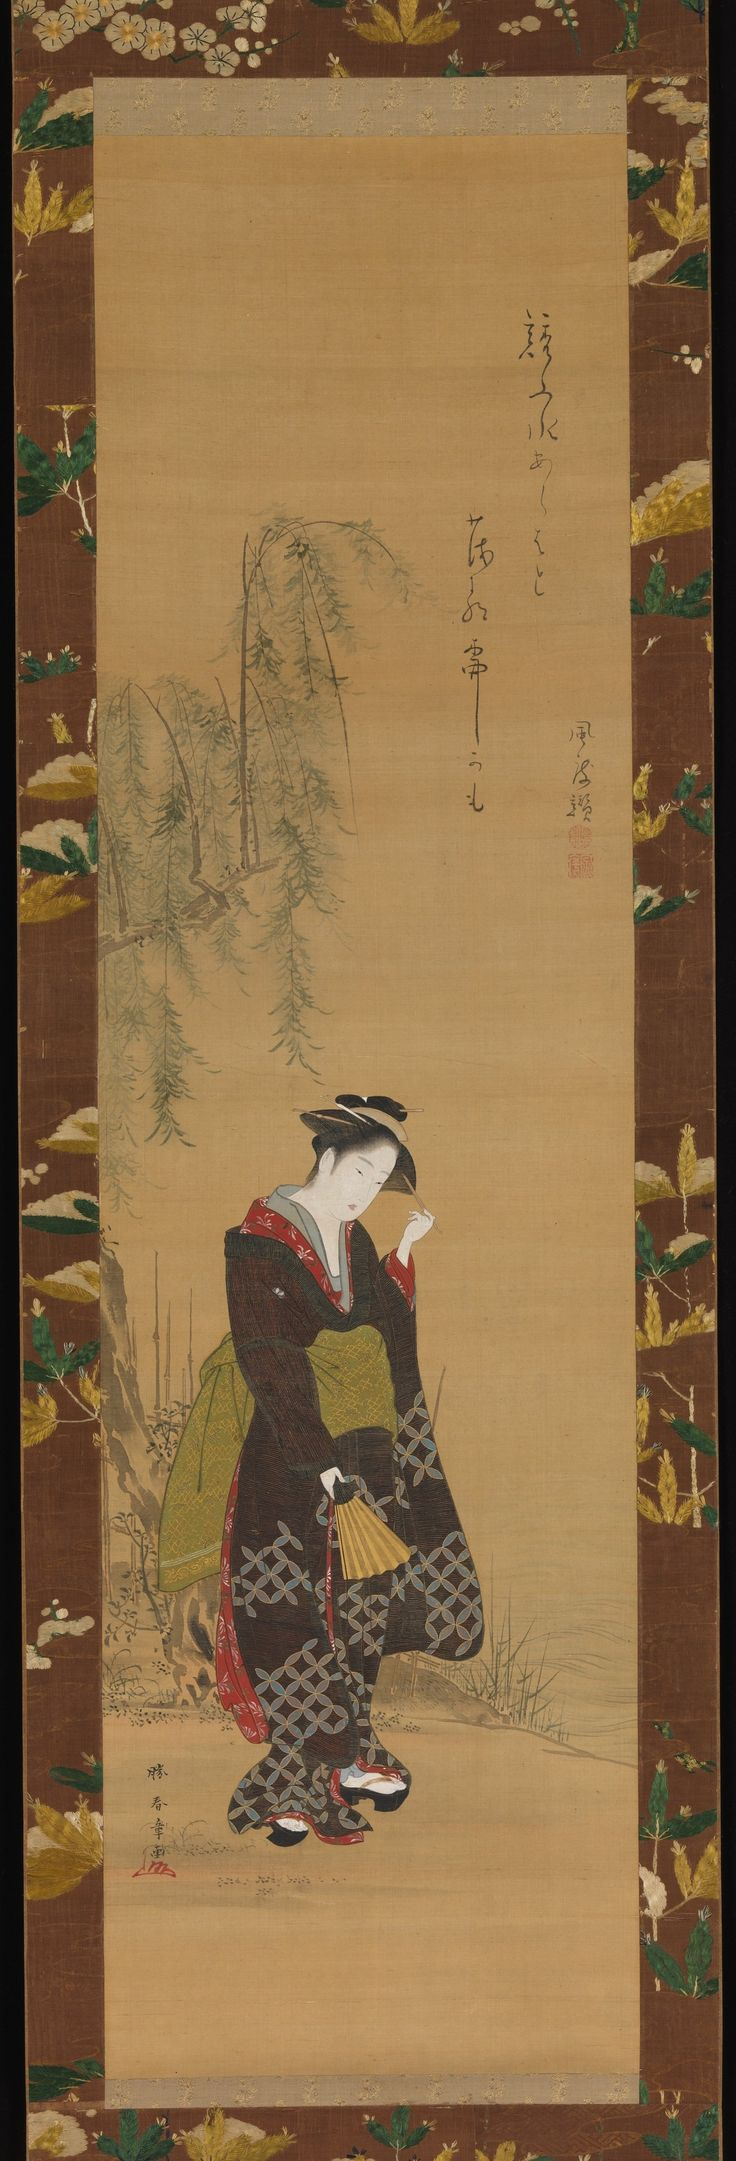 Lush and sensual, ukiyo-e paintings of the eighteenth century idealized beauty, placing courtesans and young women in indoor and outdoor seasonal settings. Shunshō—an Edo bon vivant, painter, and print designer-was renowned for his facility in depicting actors and beautiful women